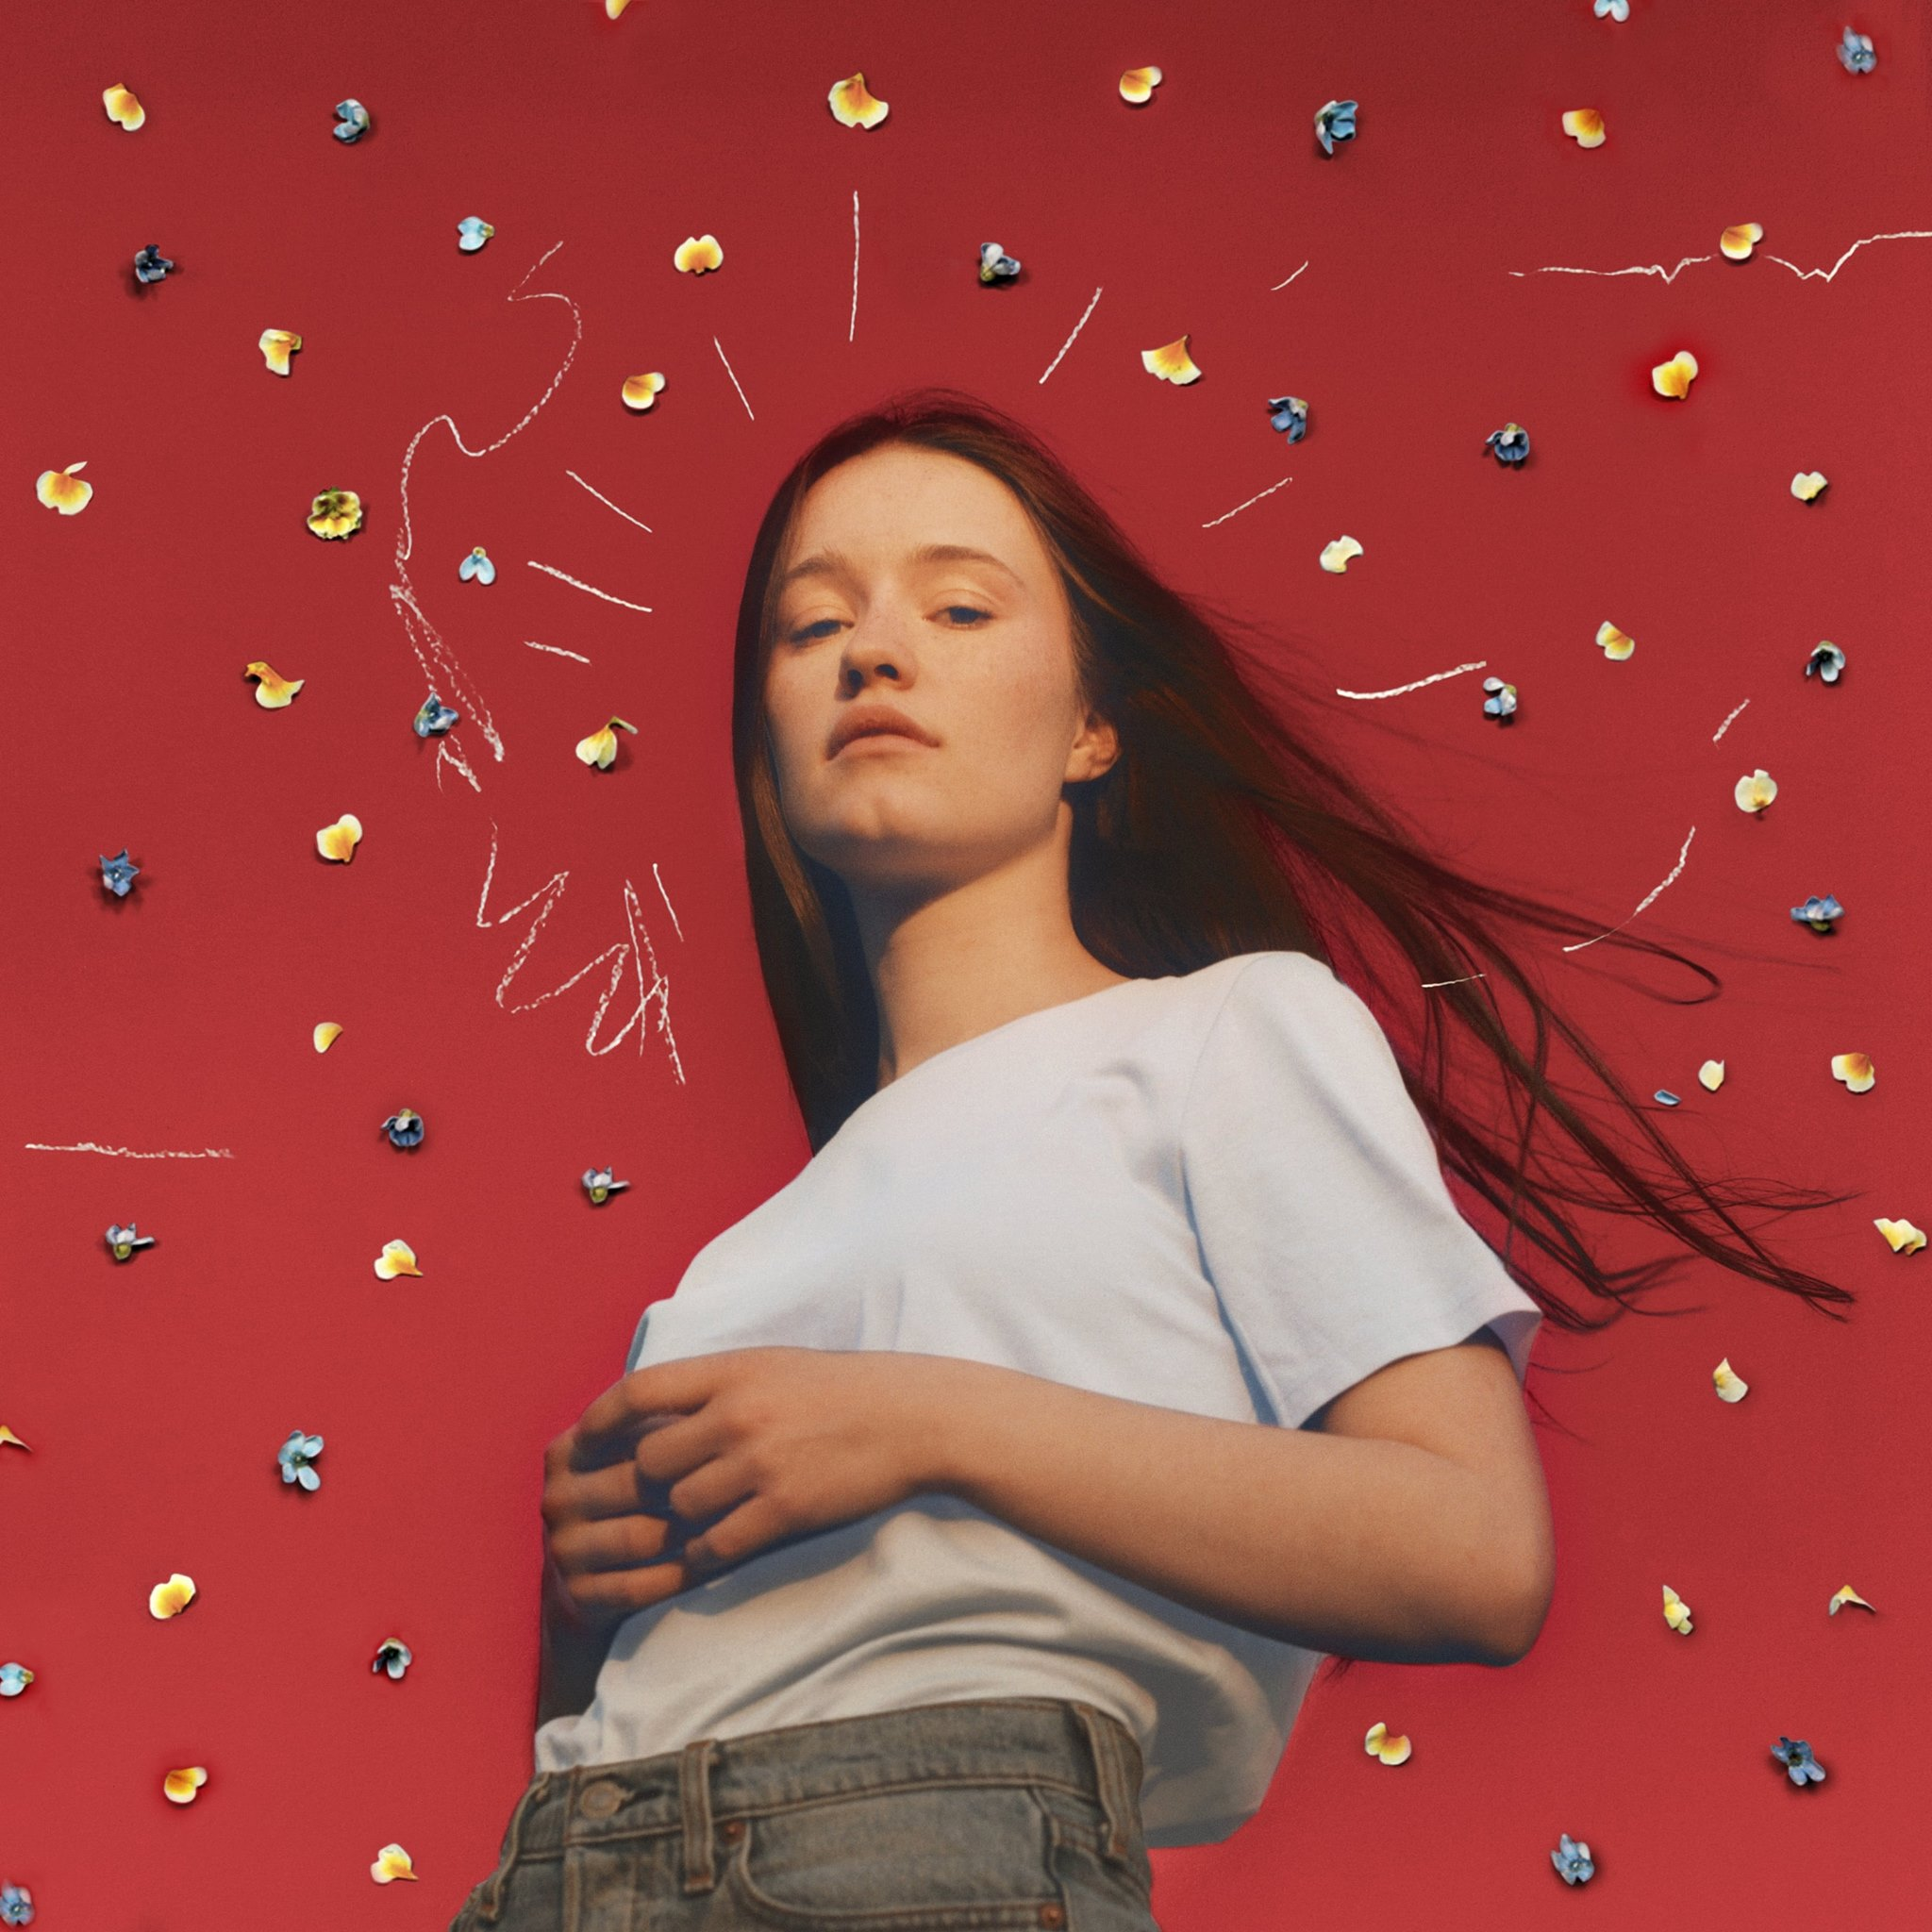 Sigrid-Sucker-Punch.jpg